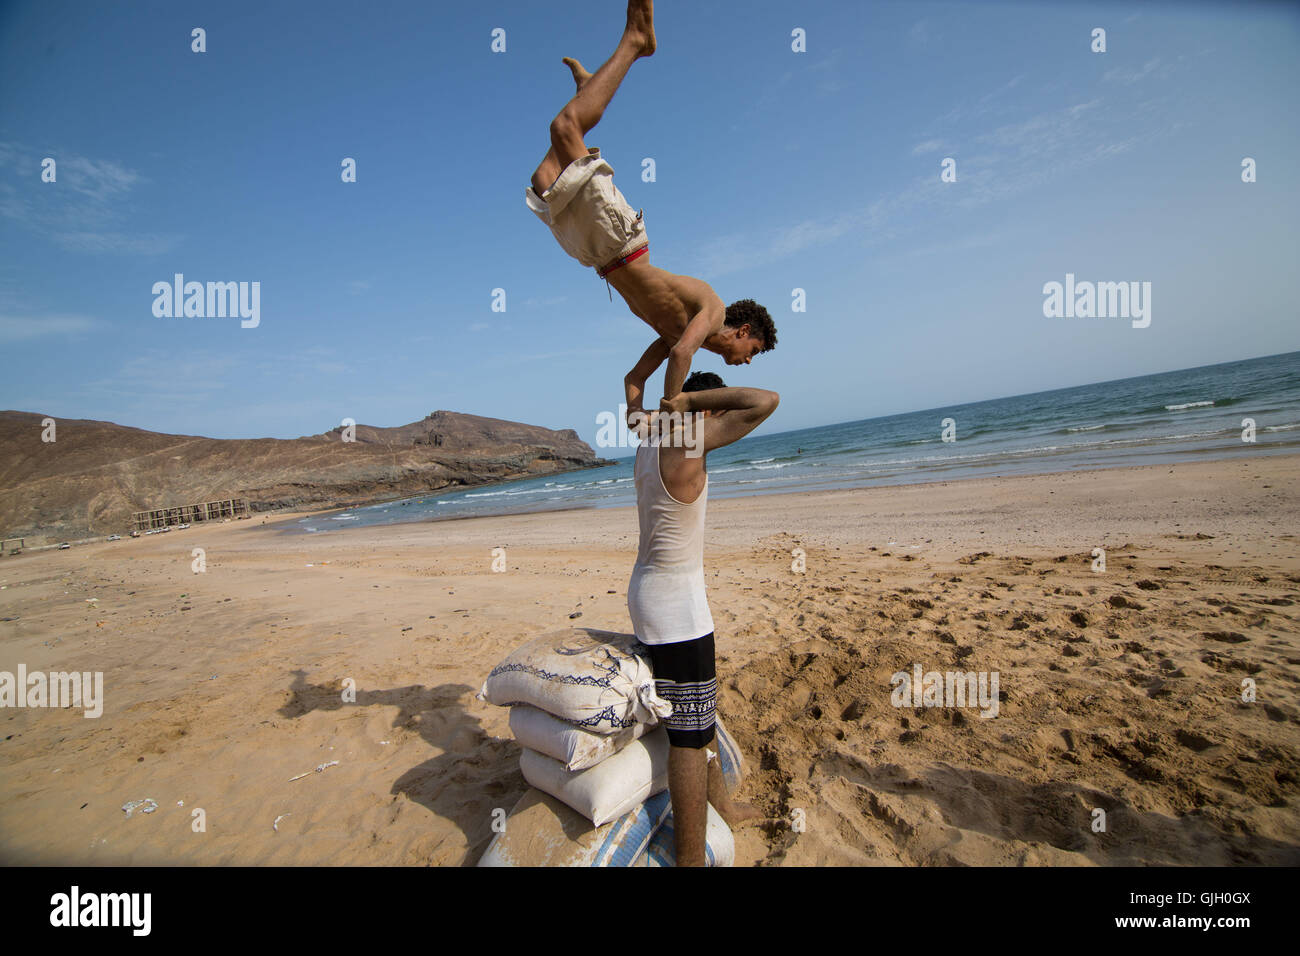 Aden, Yemen. 16th Aug, 2016. The Aden Freerun team practices parkour on Lover's Beach in Aden, Yemen © - Stock Image